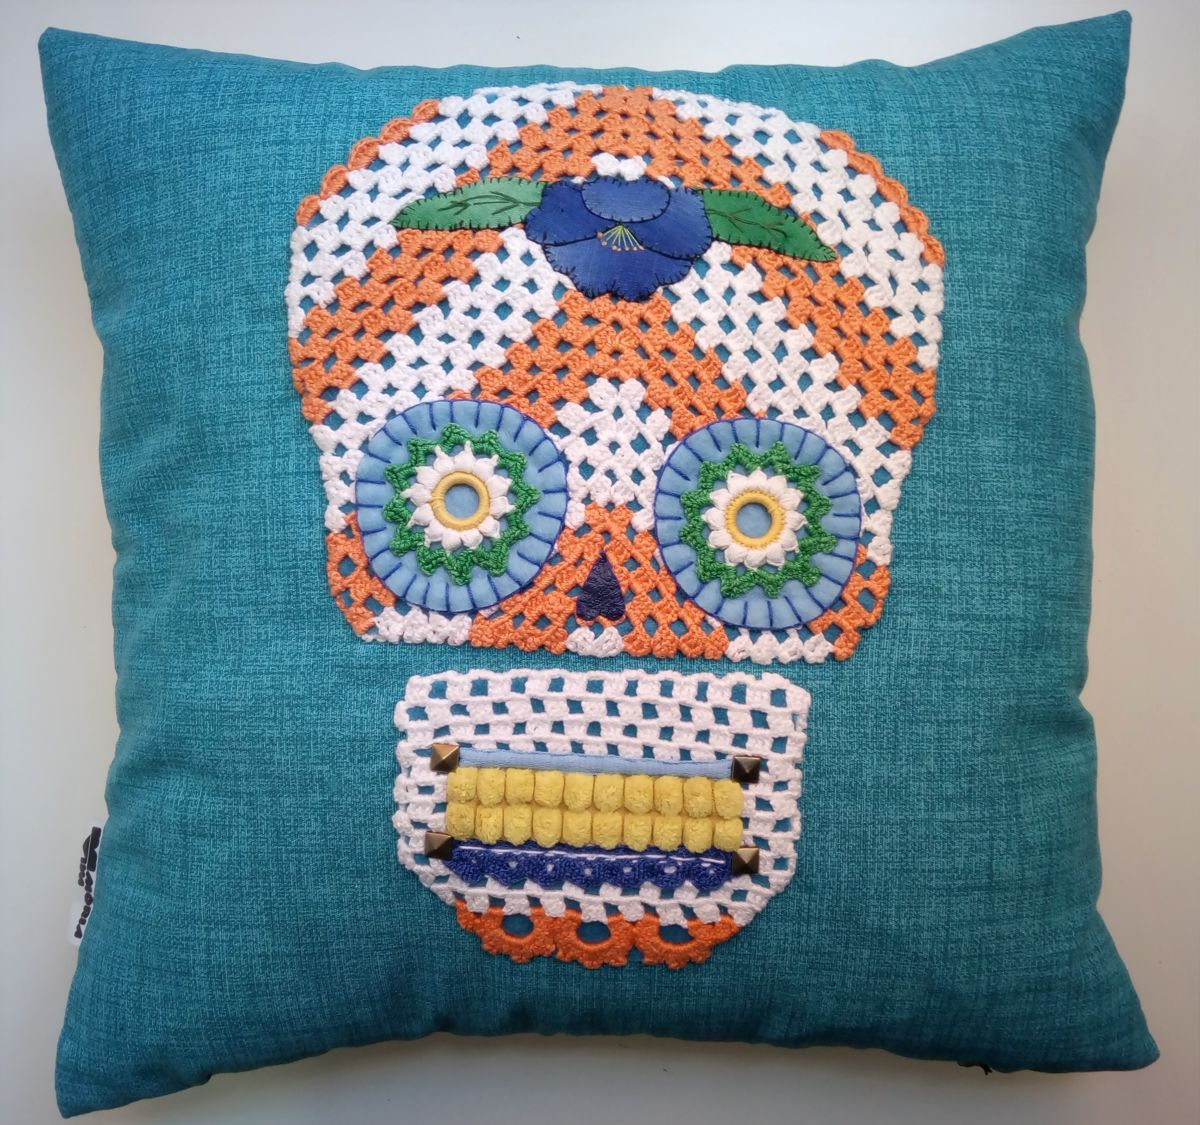 Unique Handstiched Mexican Skull Pillow Case - Mixed Media ©2018 by Memória Viva -            memoria viva, pillow, cushion, crochet, skull, coussin, crane